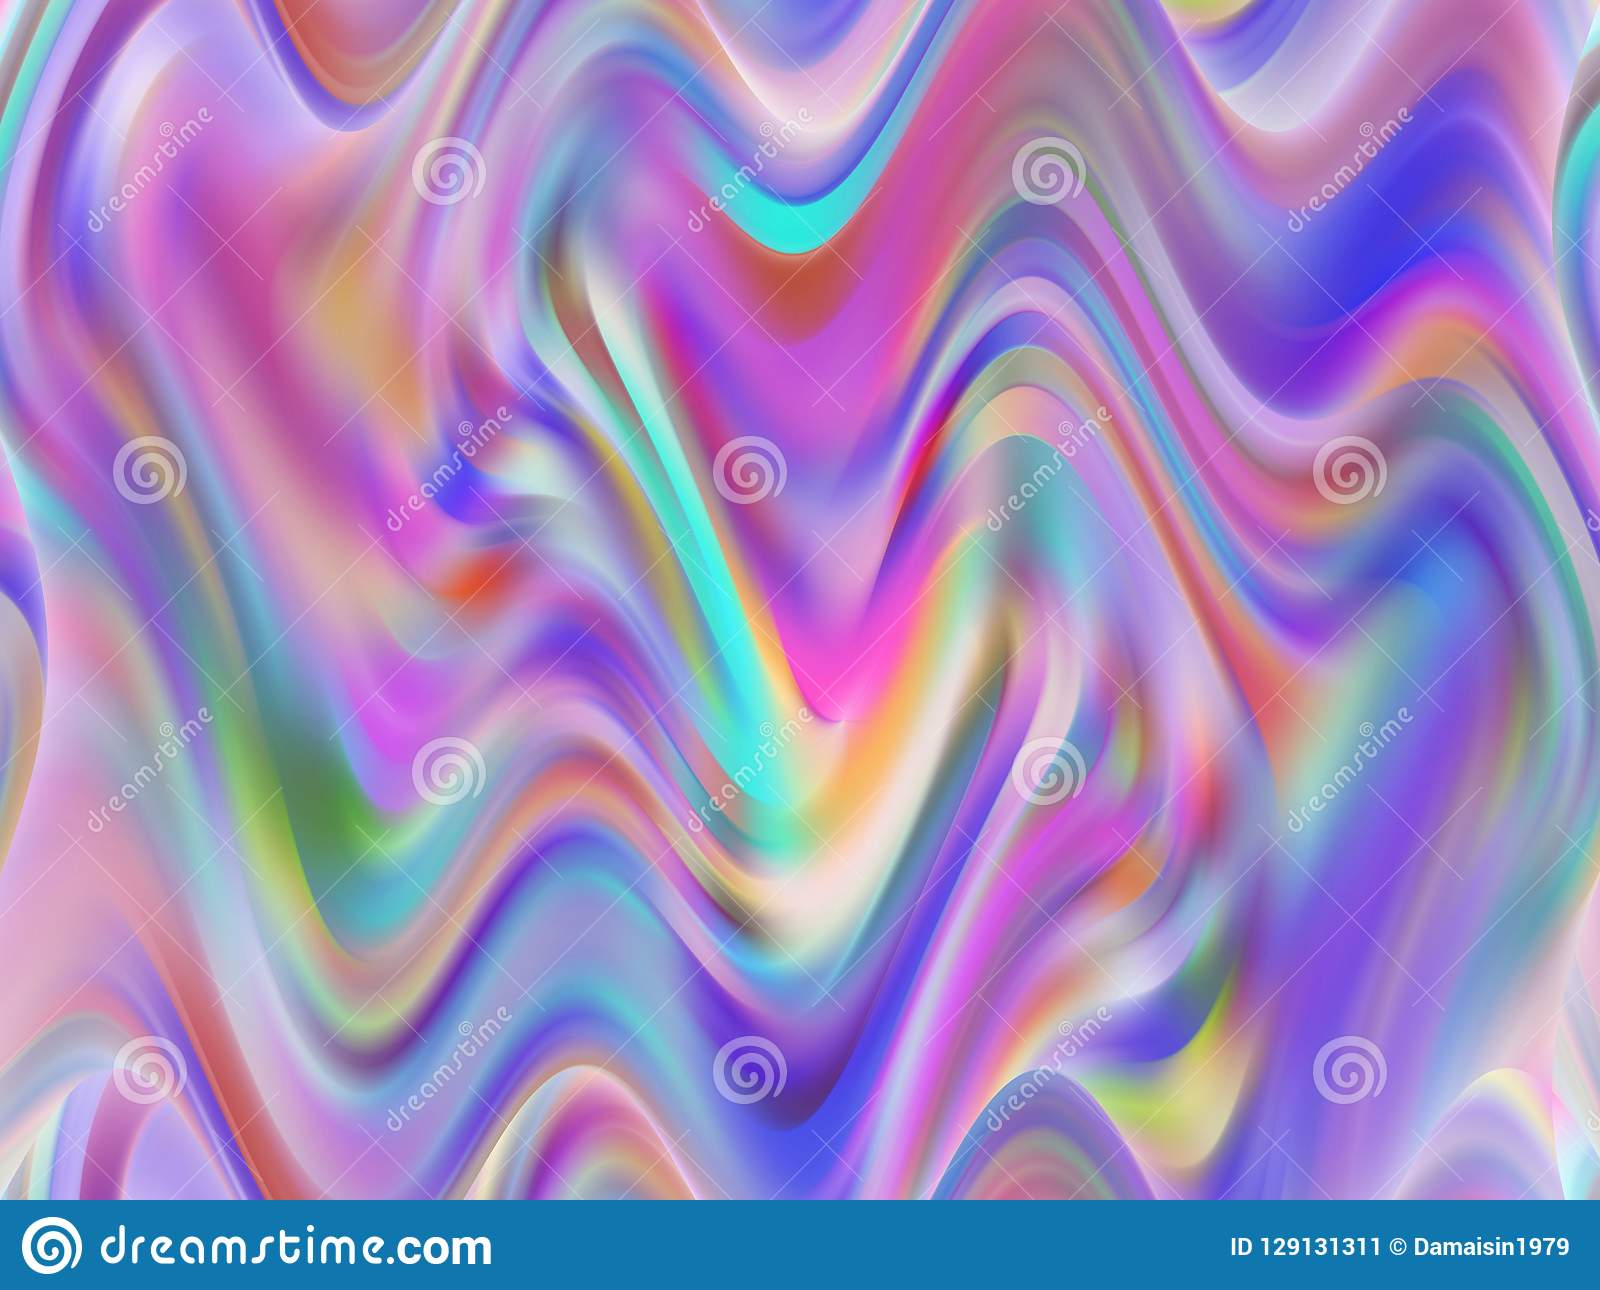 Abstract purple pink green fluid rainbow geometries, playful geometries background, graphics, abstract background and texture